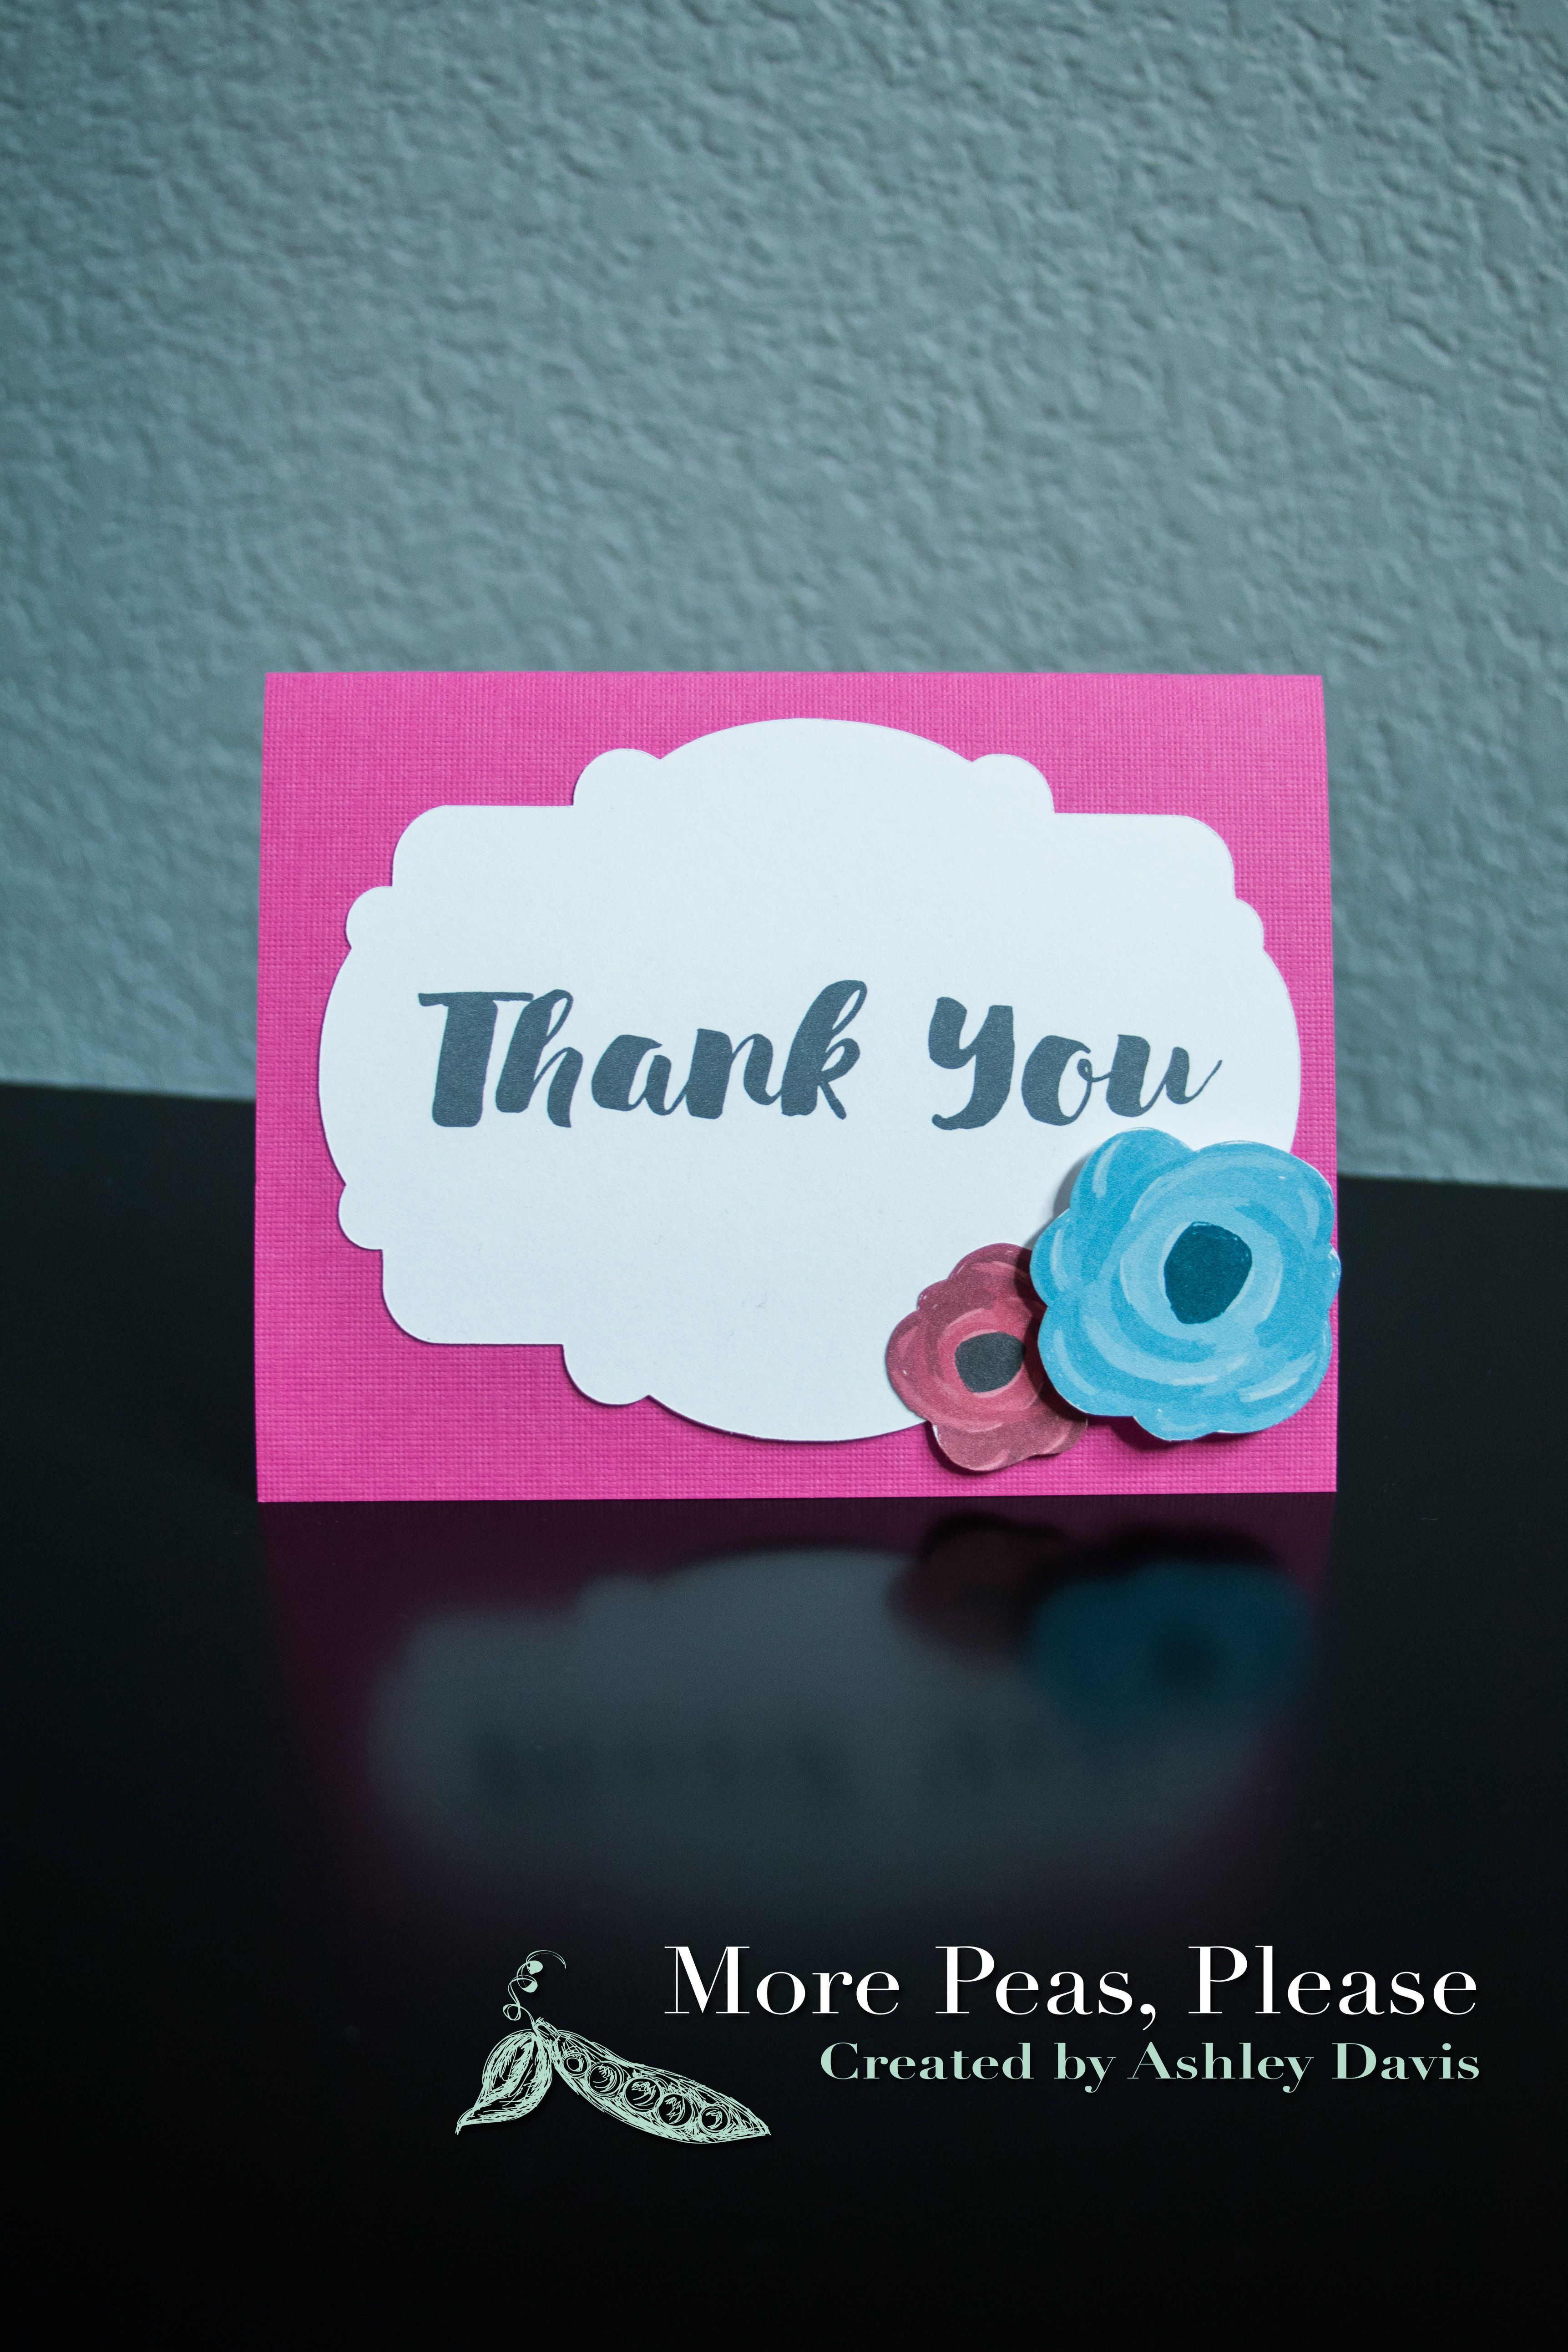 Thank You Card Made By More Peas Please Found On Facebook